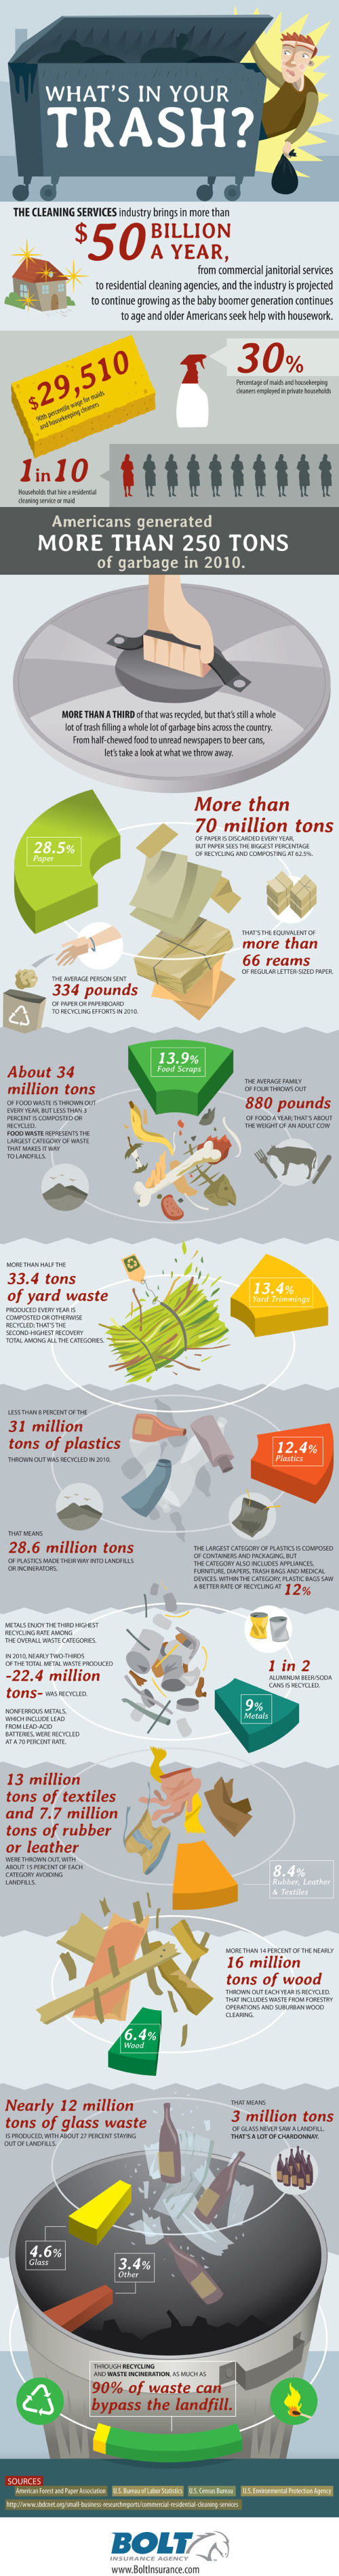 What's In Your Trash? infographic